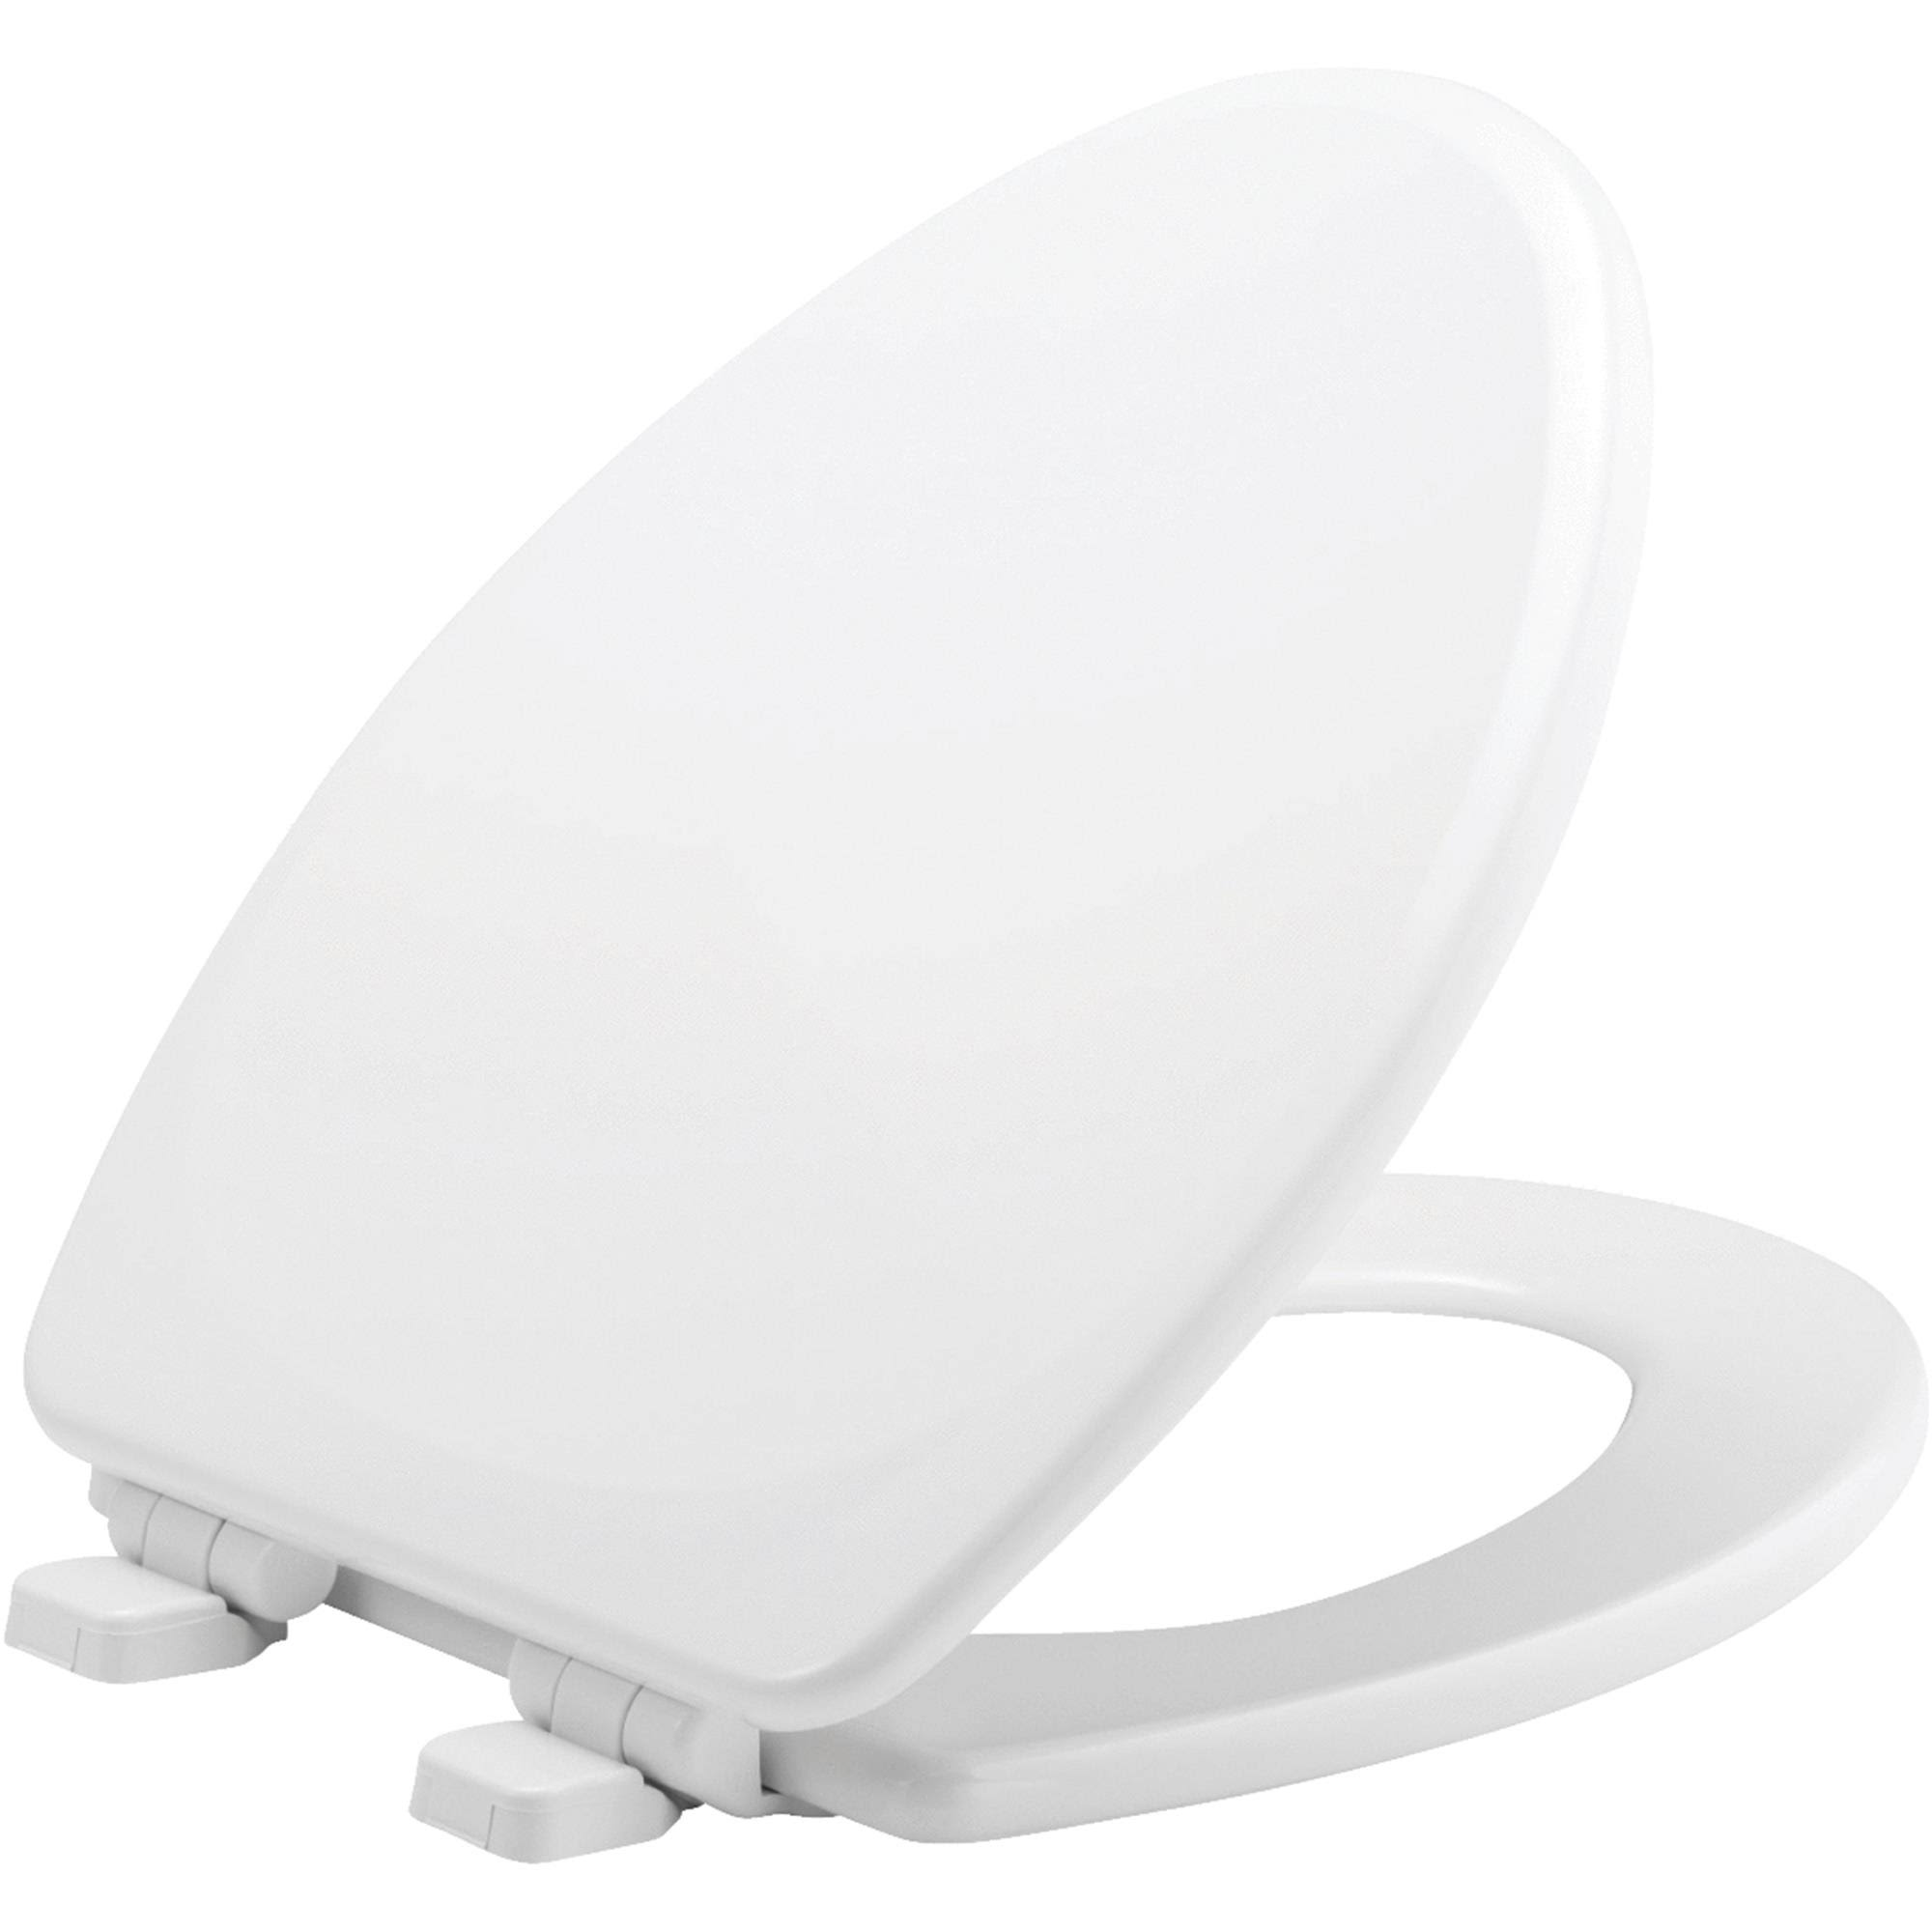 Mayfair Elongated Wood Whisper Close Toilet Seat - White